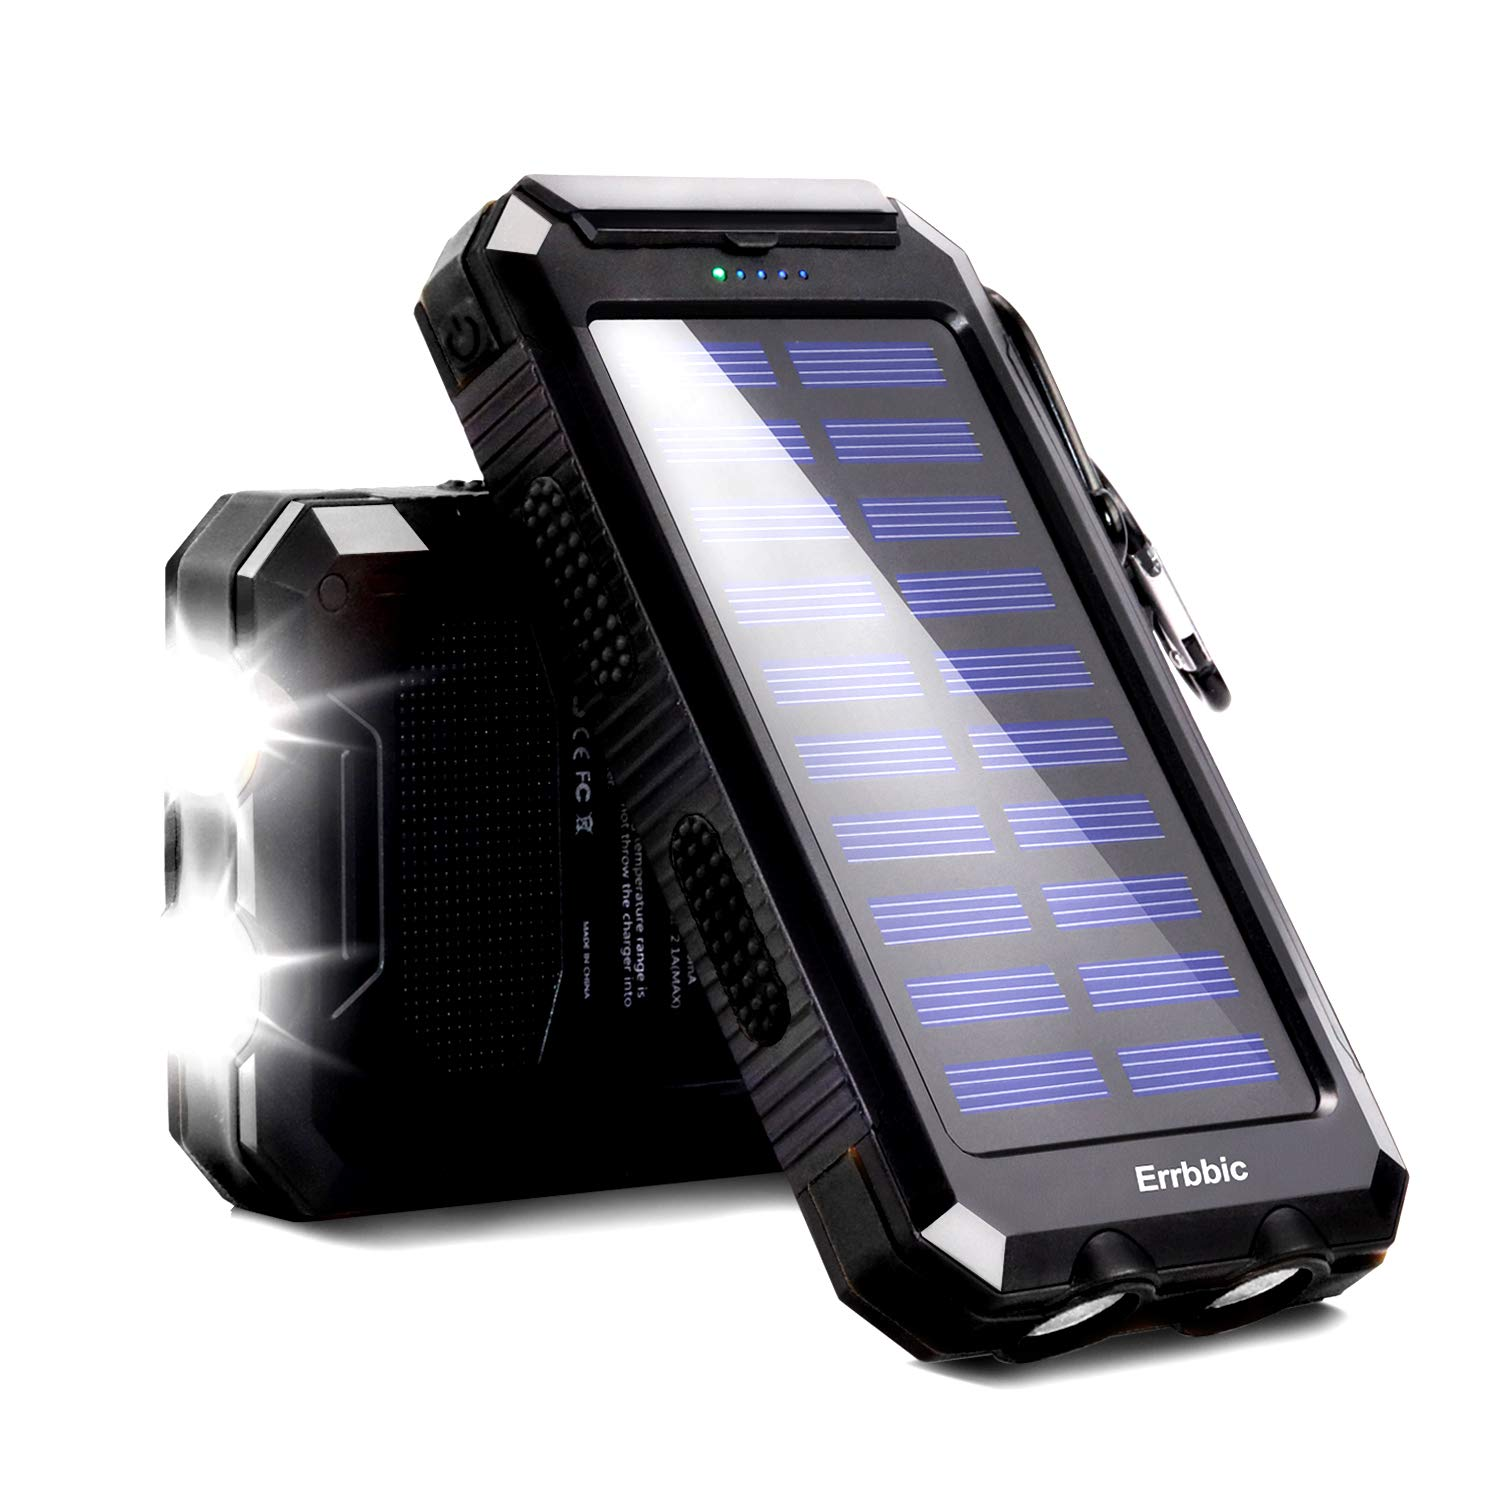 20000mAh Solar Power Bank Solar Charger Waterproof Portable Battery Charger with Compass for iPad iPhone Android Cellphones (Black) by ERRBBIC